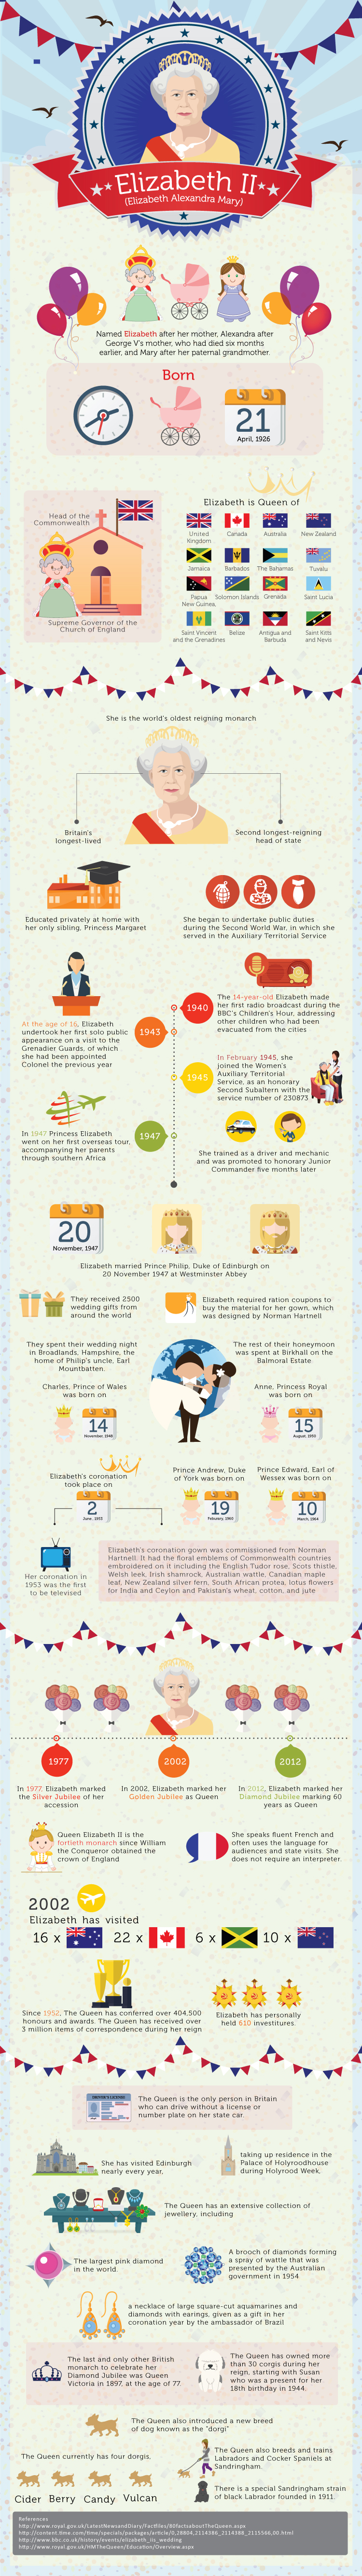 An infographic to celebrate the Queen's birthday